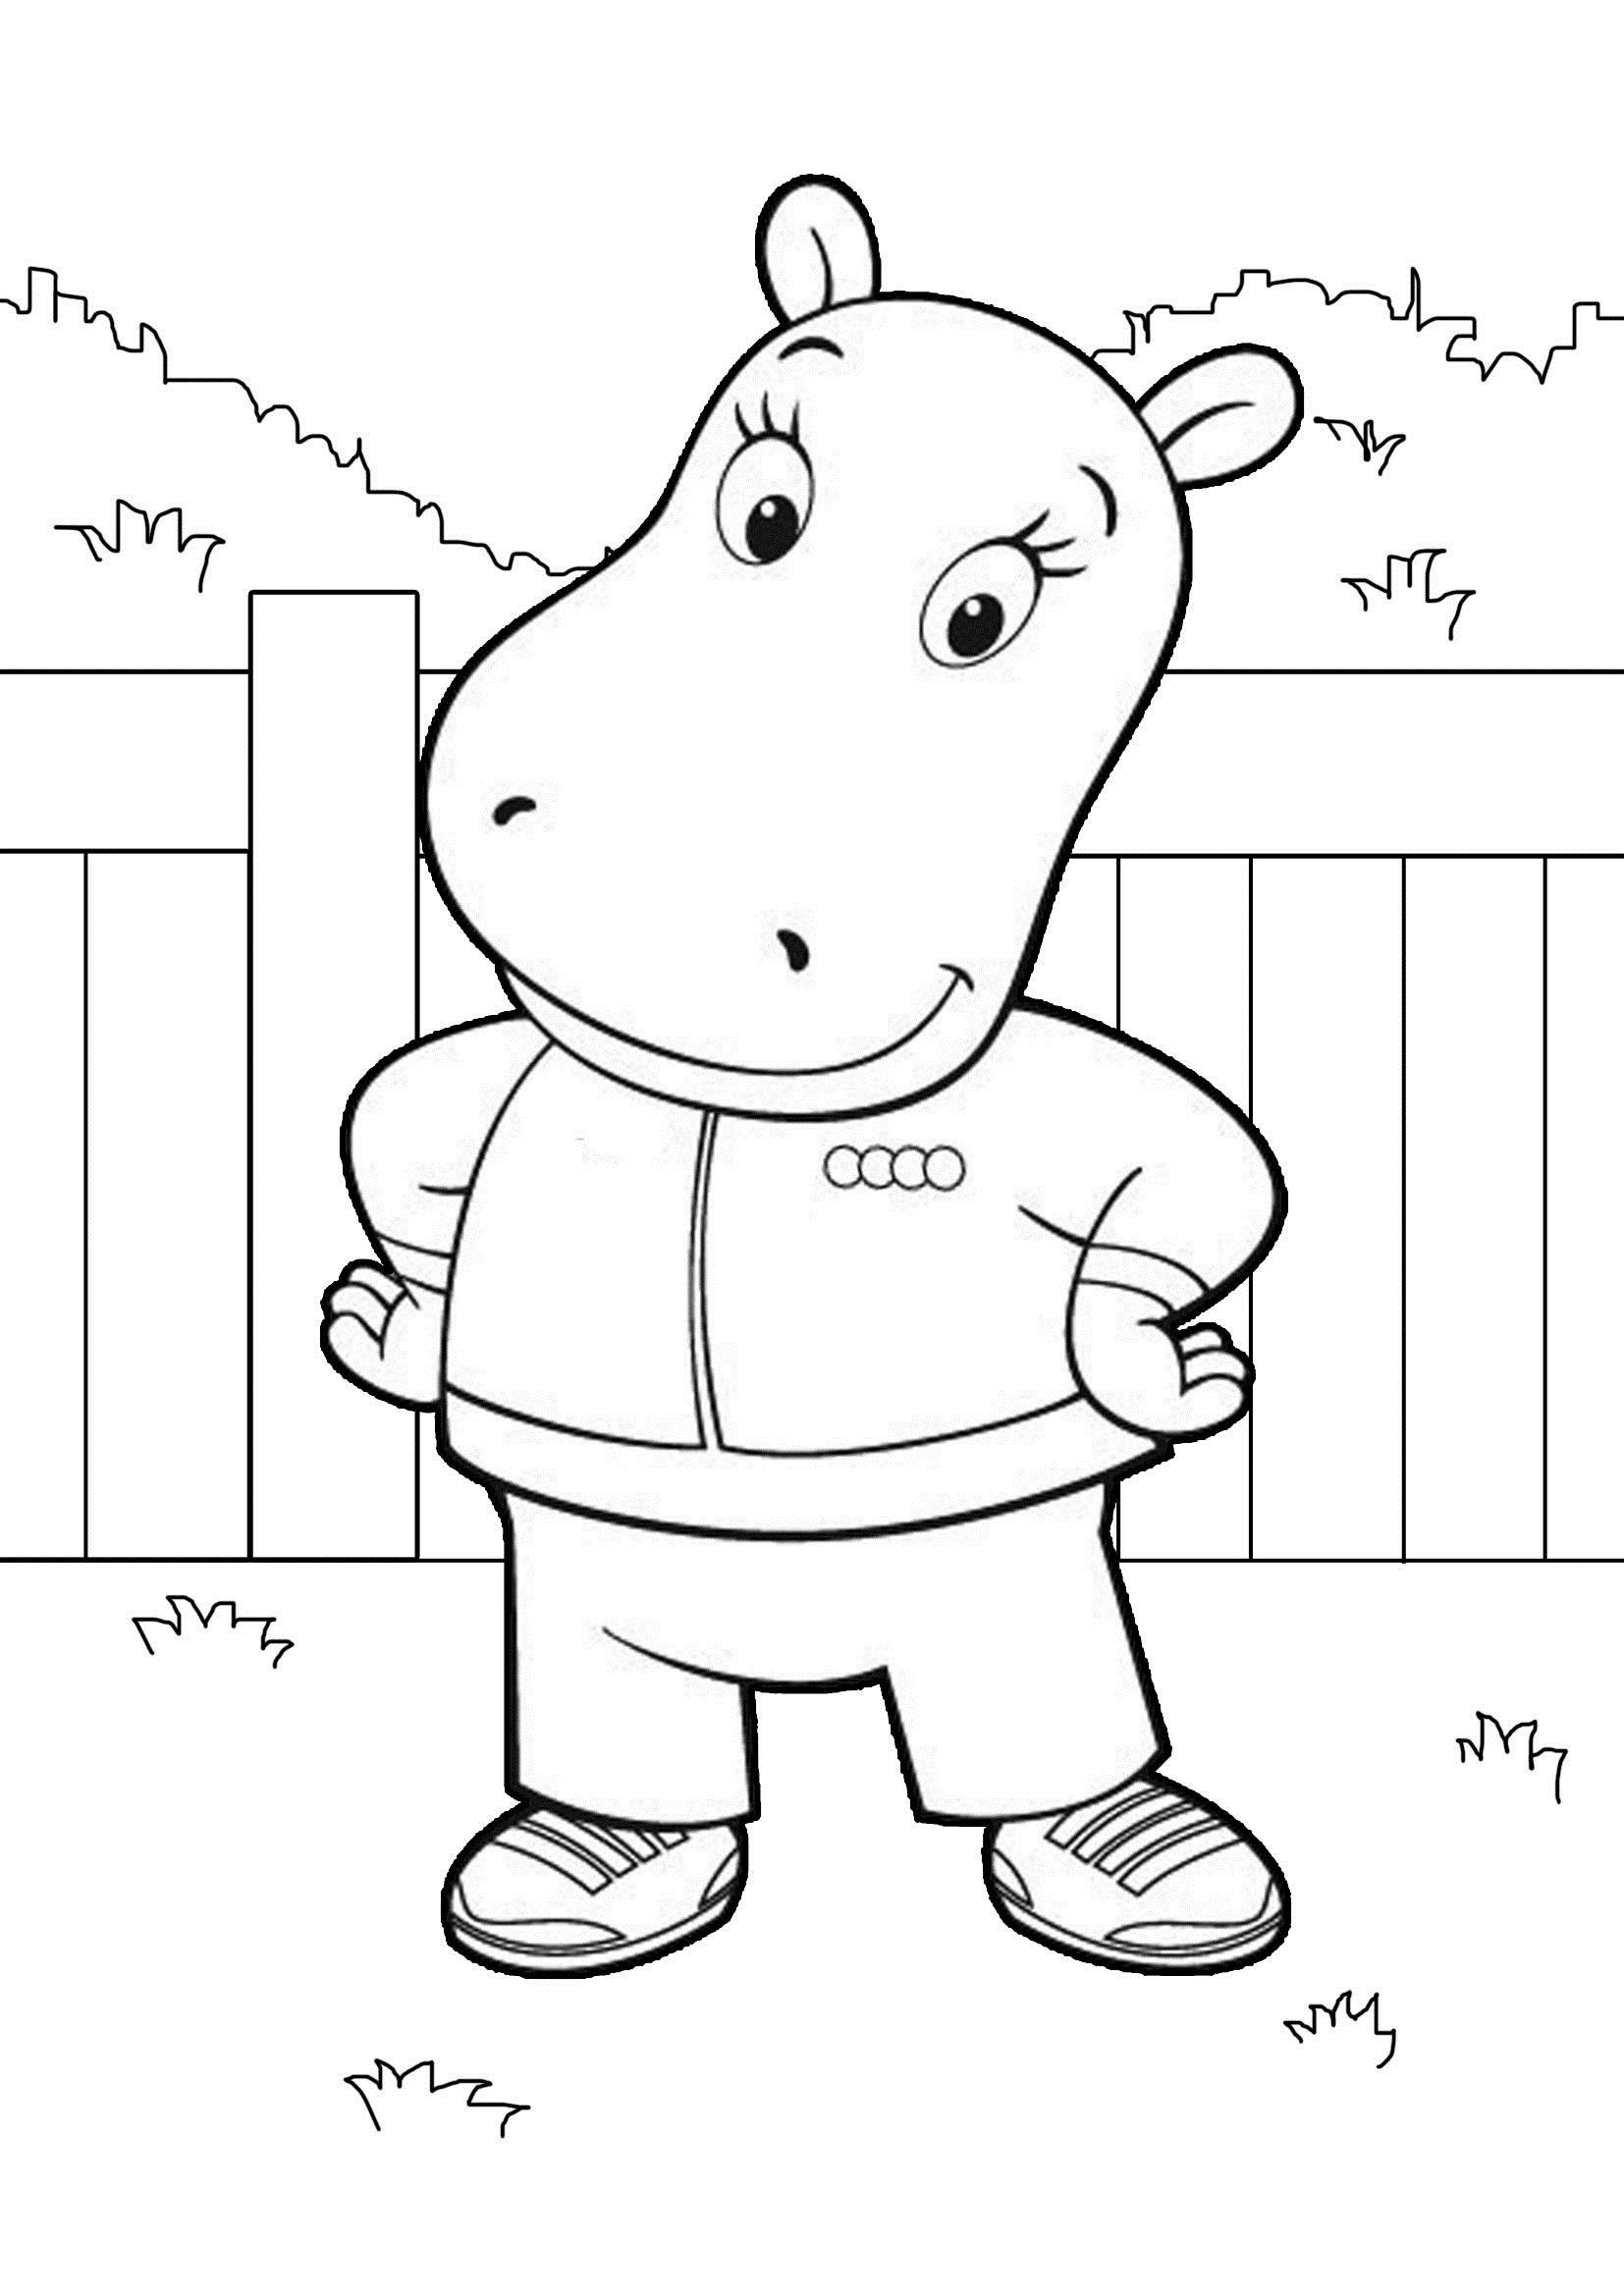 printable coloring book pages printable backyardigans coloring pages for kids coloring pages printable book